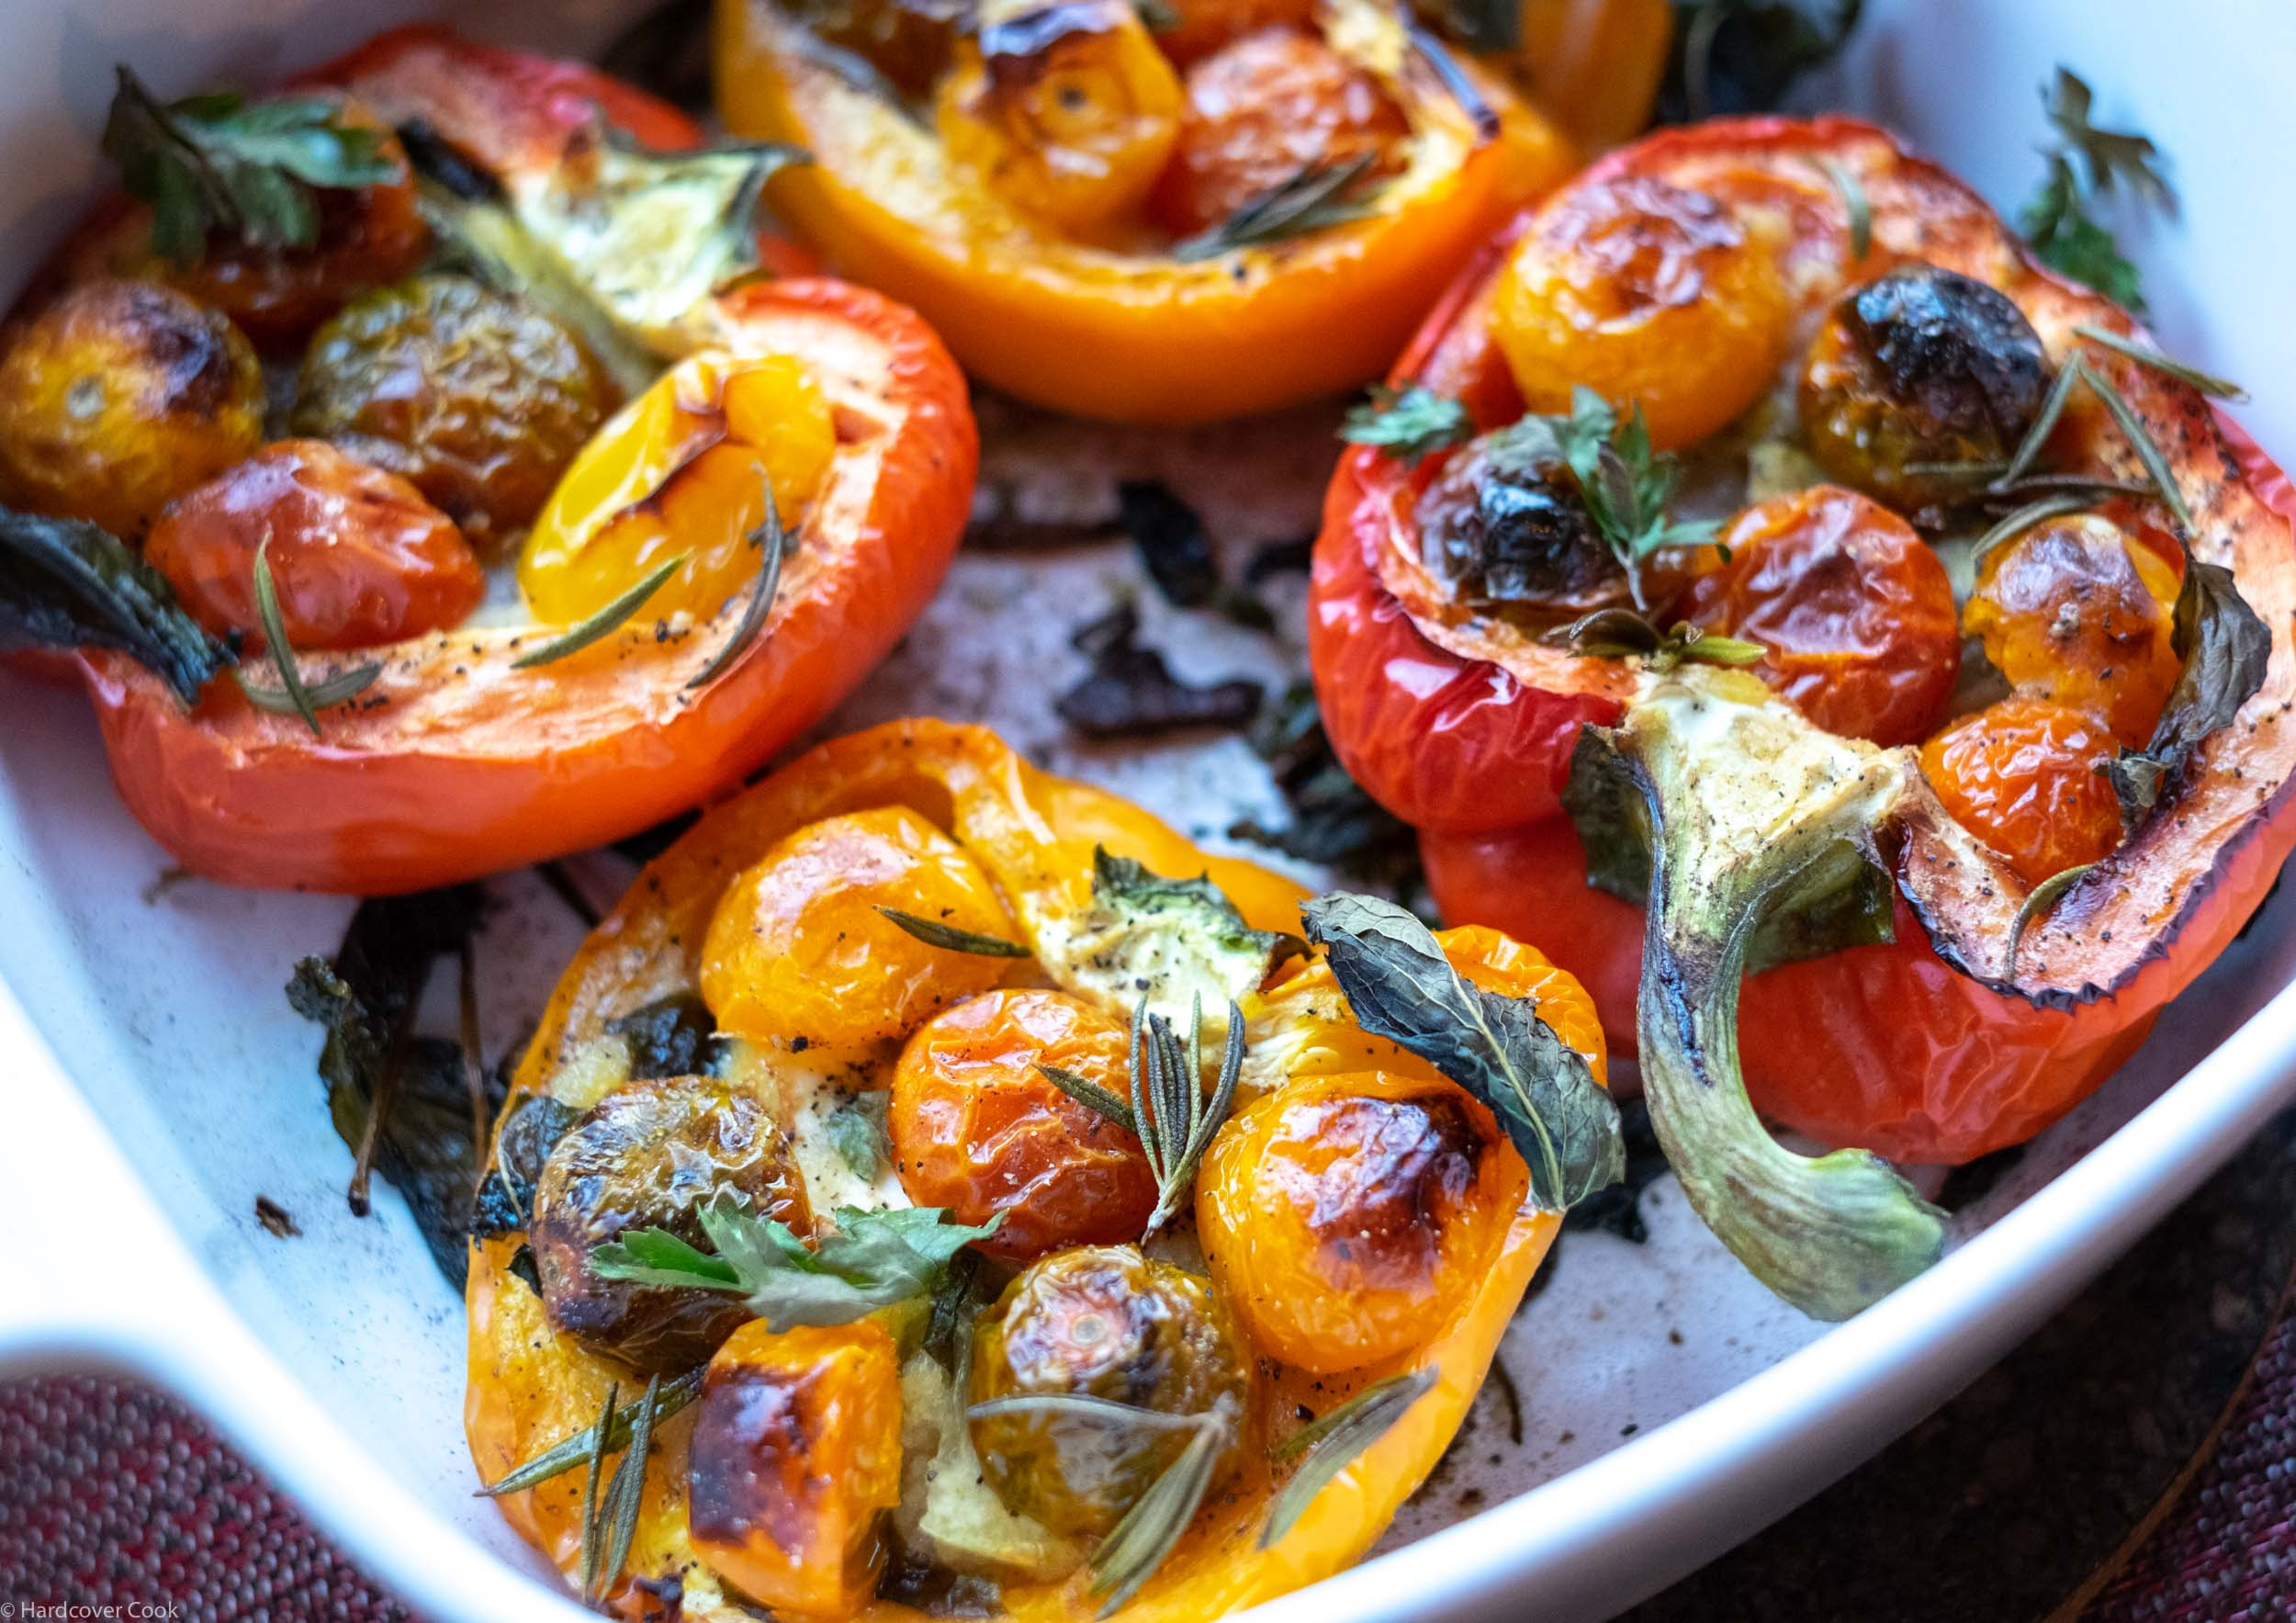 Oven-Charred Tomato-Stuffed Peppers from Everyday Dorie